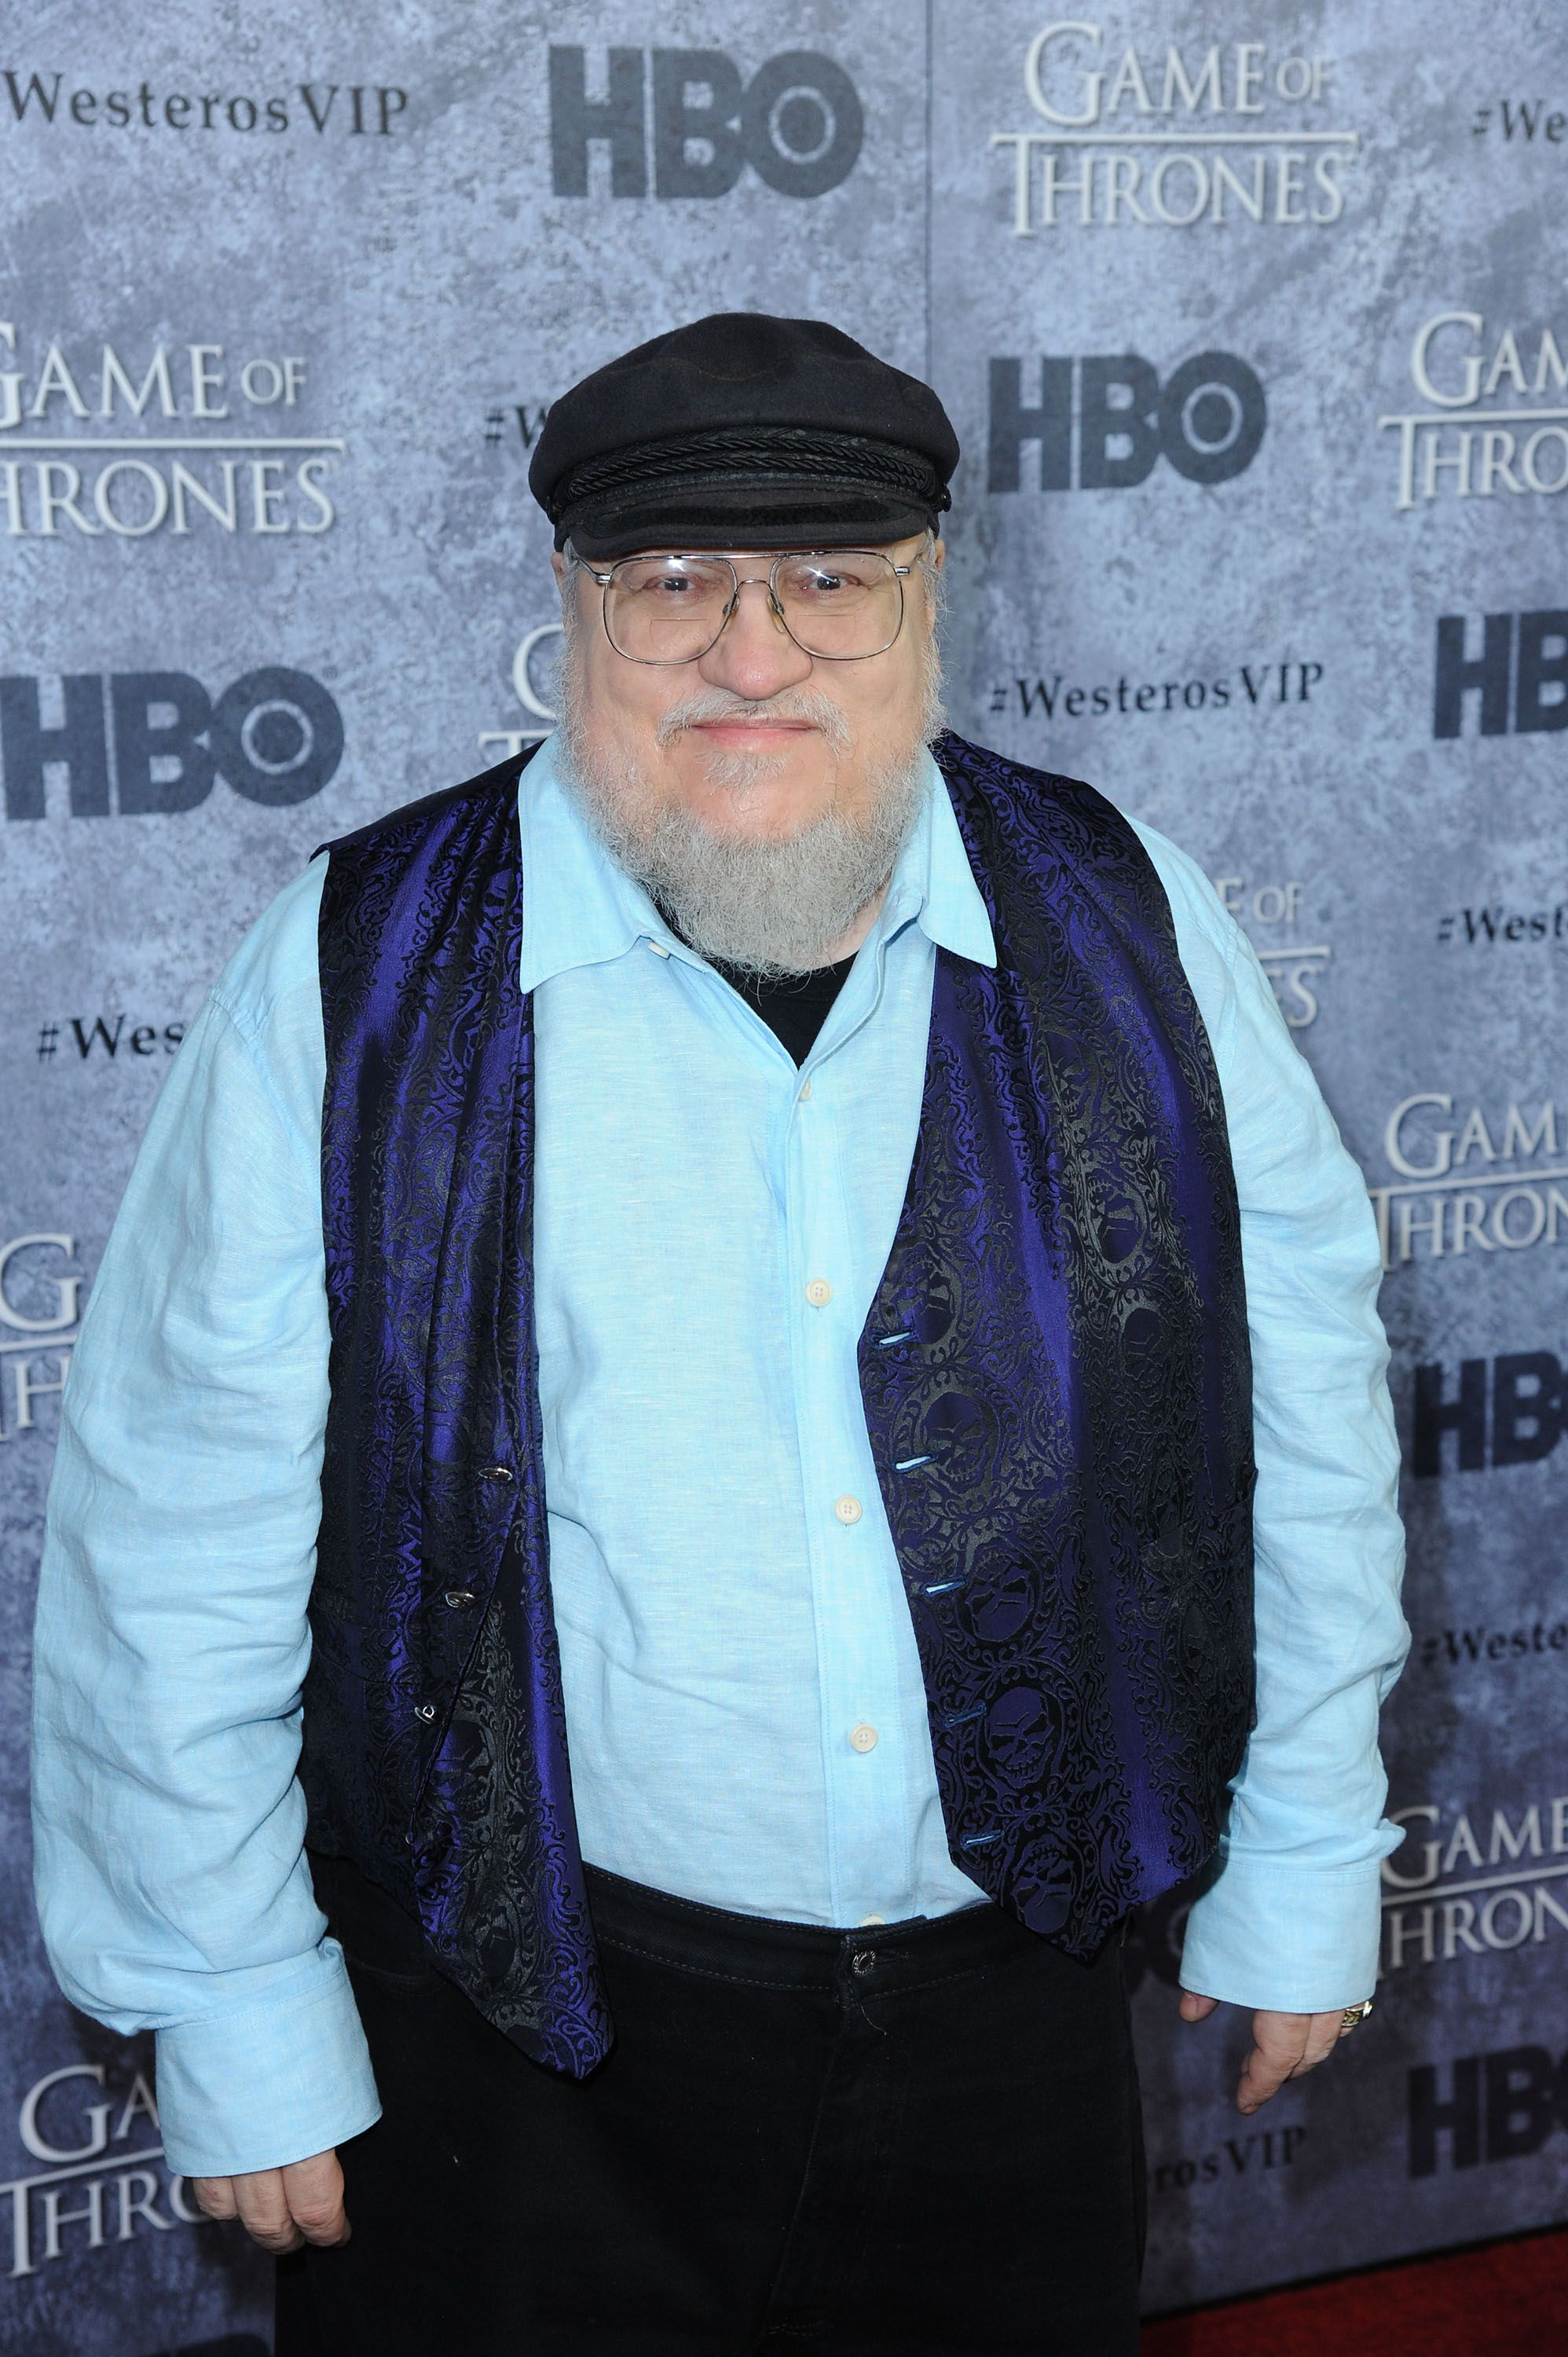 George RR Martin's next Game of Thrones novel won't be out